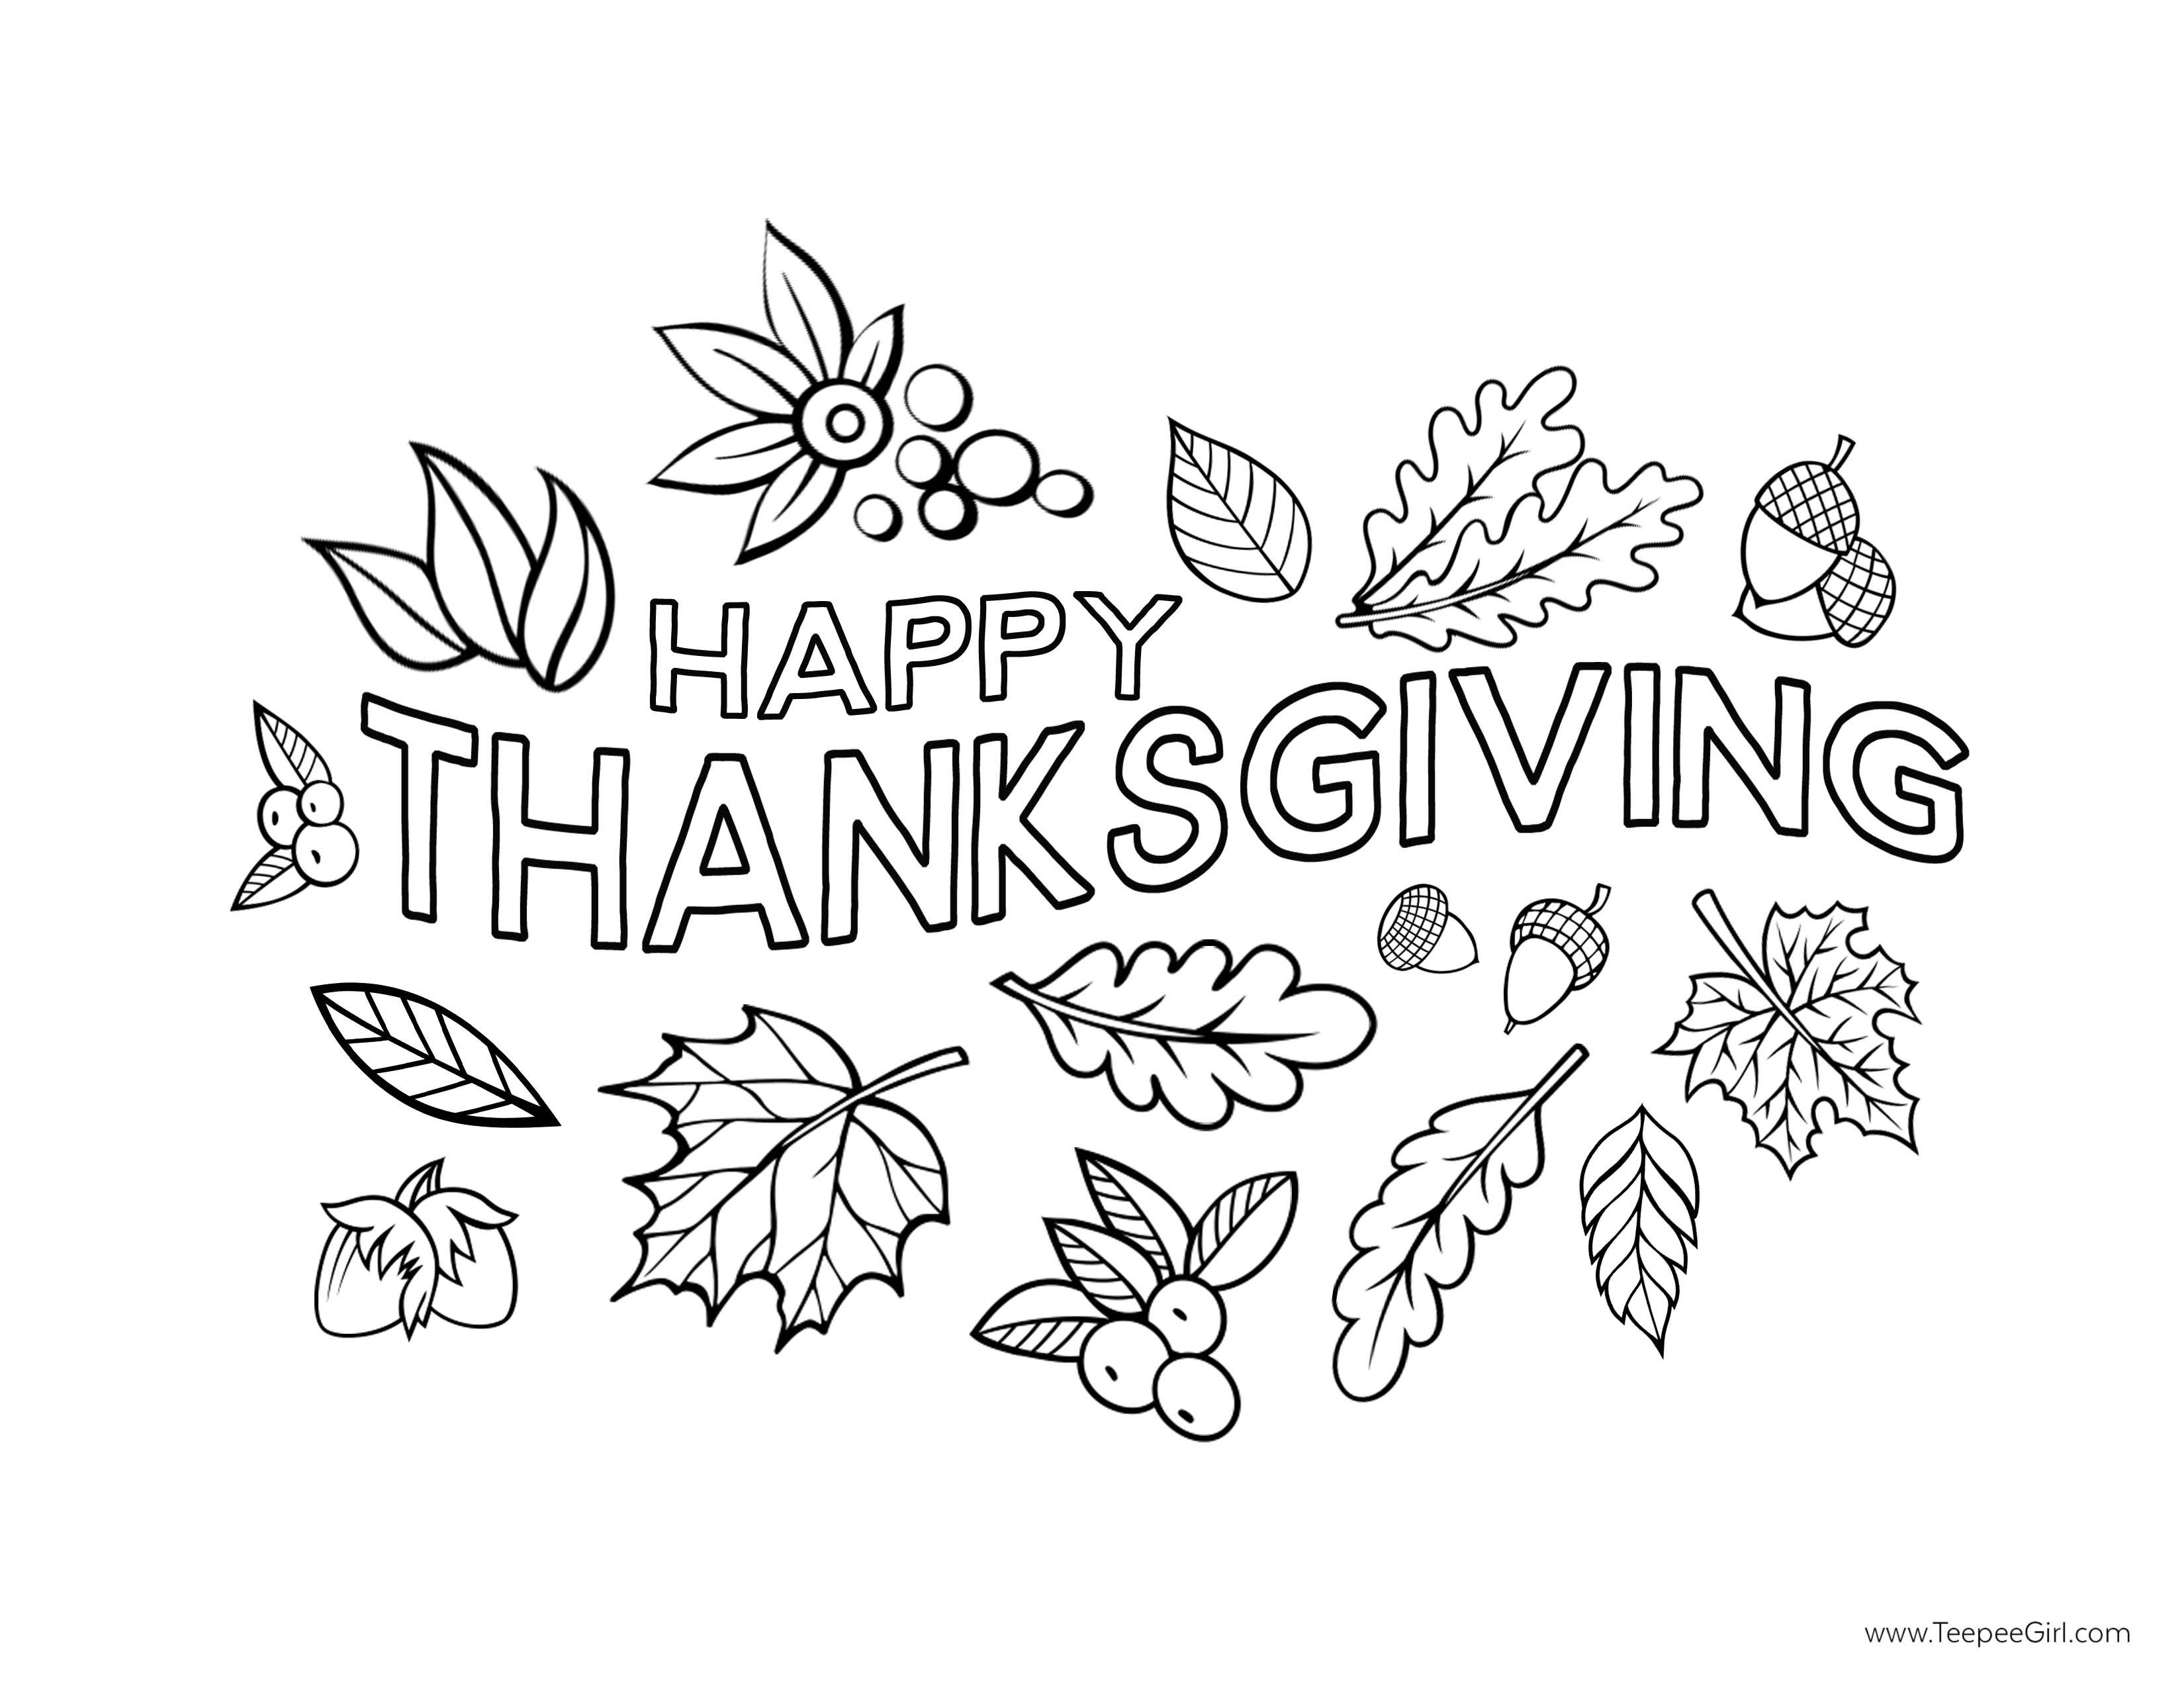 Happy-Thanksgiving-Coloring-Page-1.jpg (3300×2550) | Coloring Pages ...